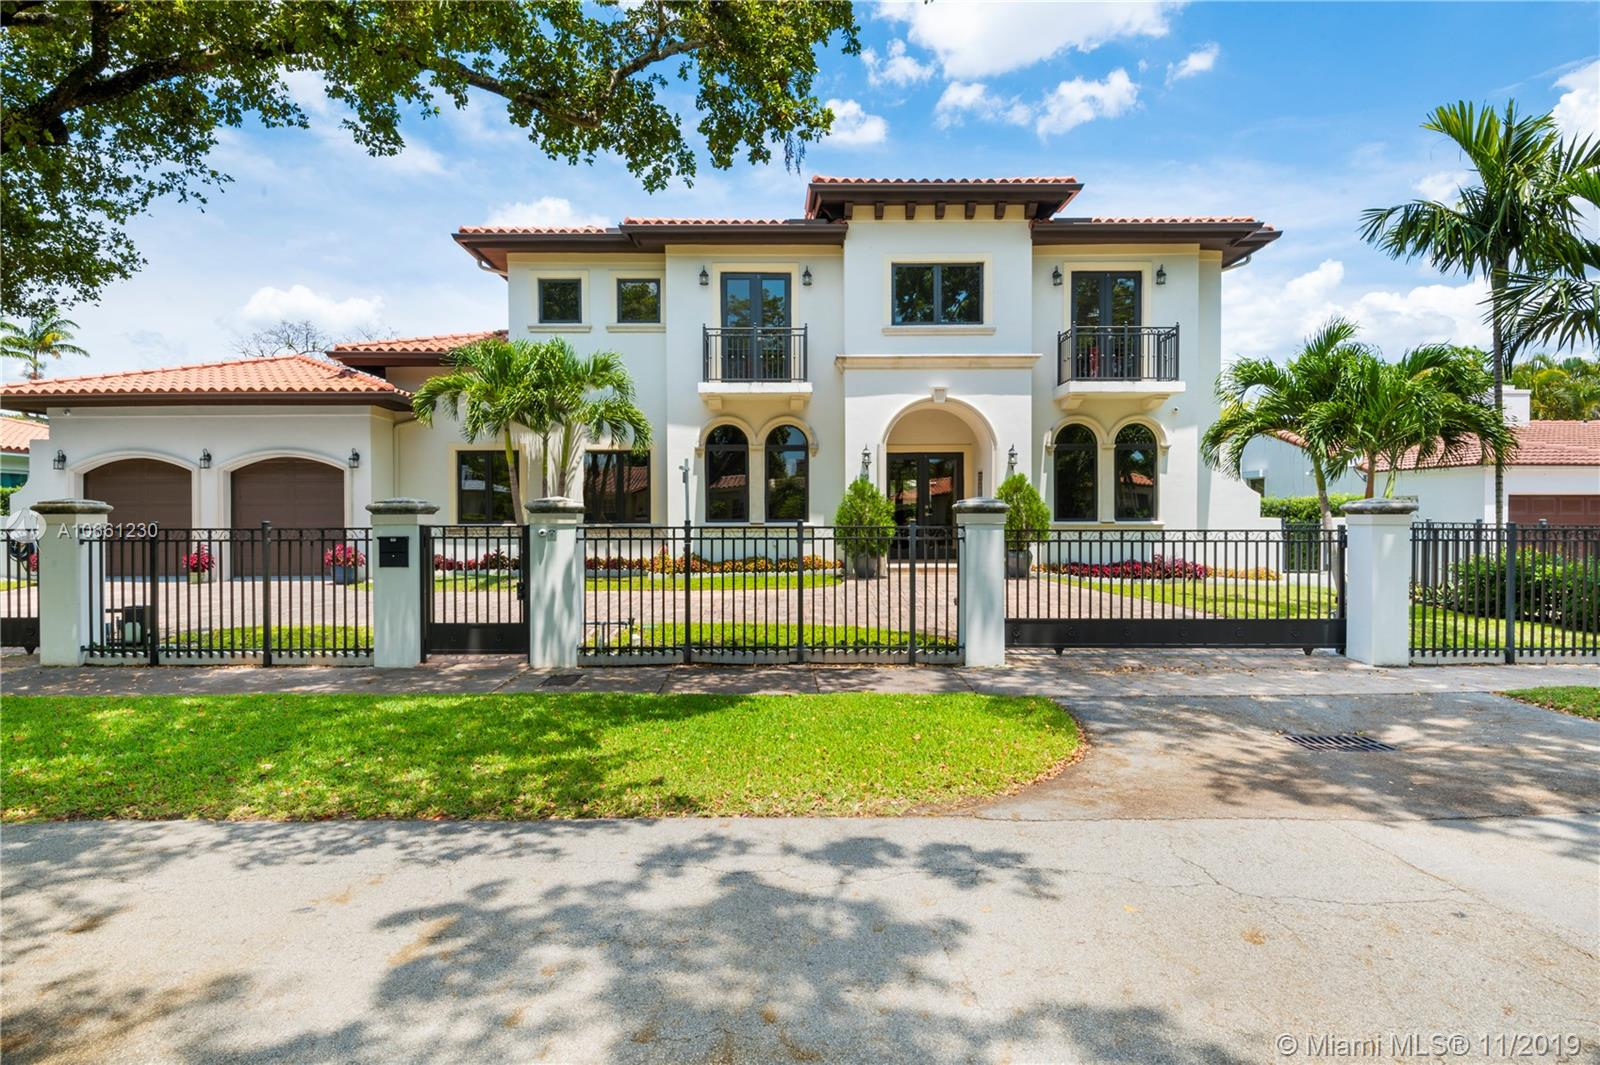 629 Madeira Ave, Coral Gables FL 33134